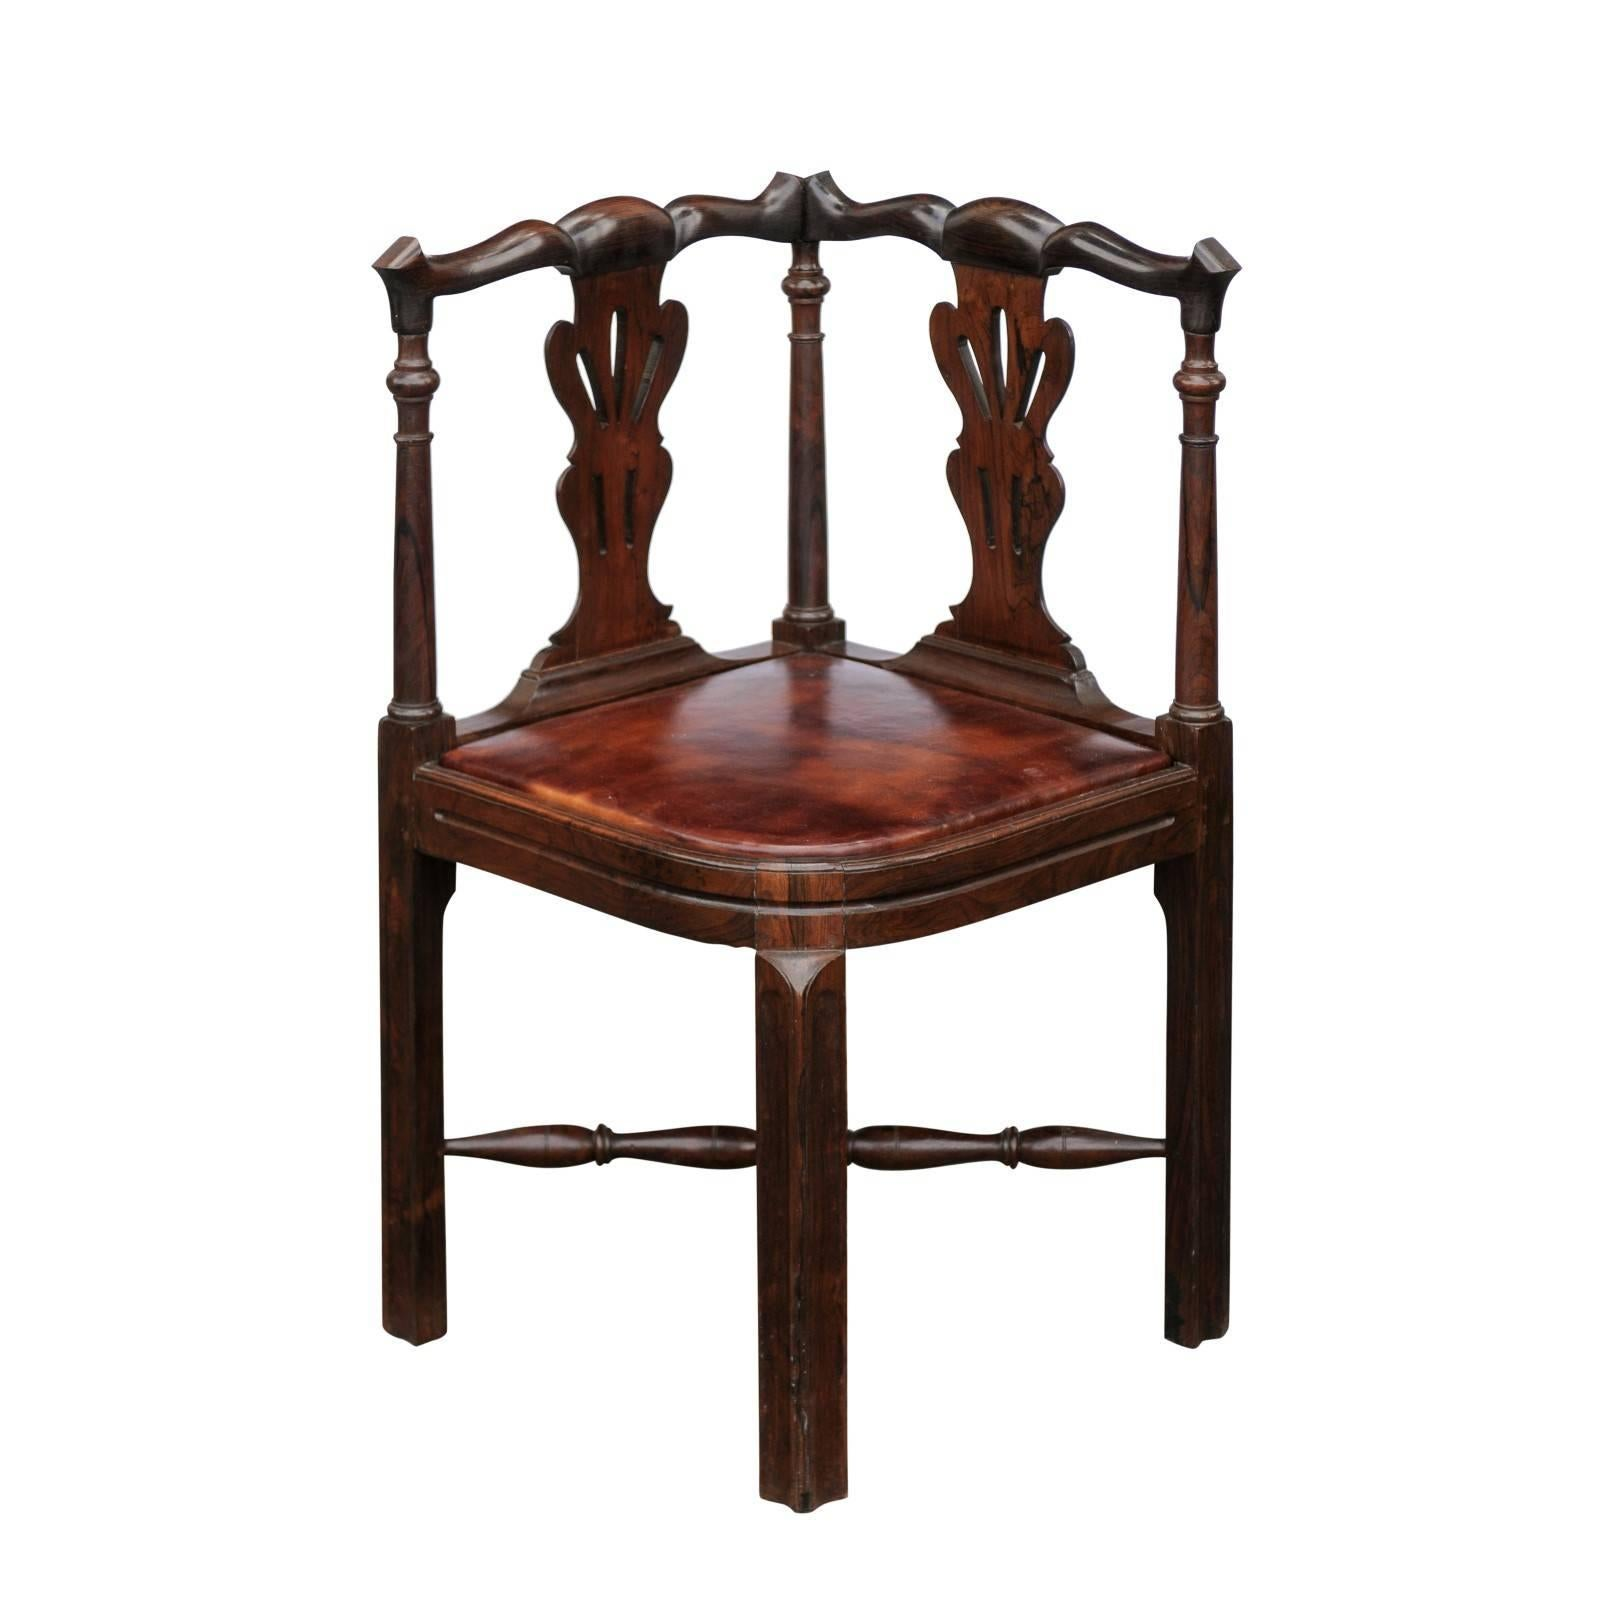 Superieur English 1840s Carved Wood Corner Chair With Leather Seat And Cross  Stretcher For Sale